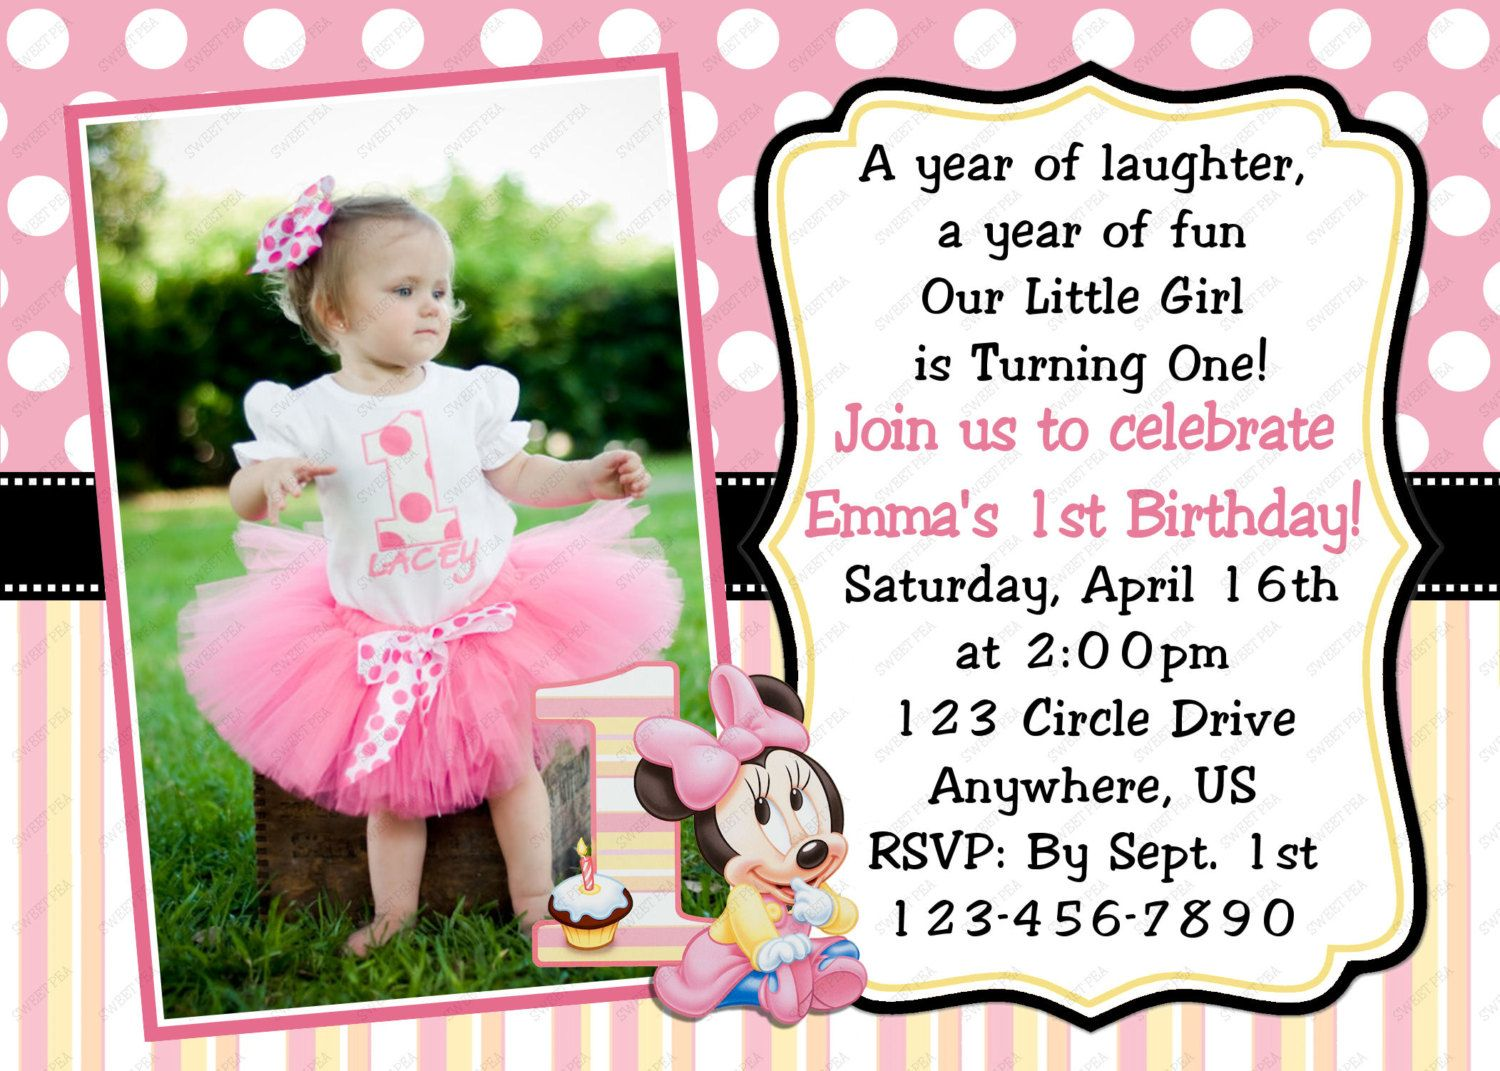 baby girl birthday card messages ; 1st-birthday-cards-for-baby-girl-best-of-minnie-mouse-baby-1st-first-birthday-invitation-or-thank-you-card-of-1st-birthday-cards-for-baby-girl